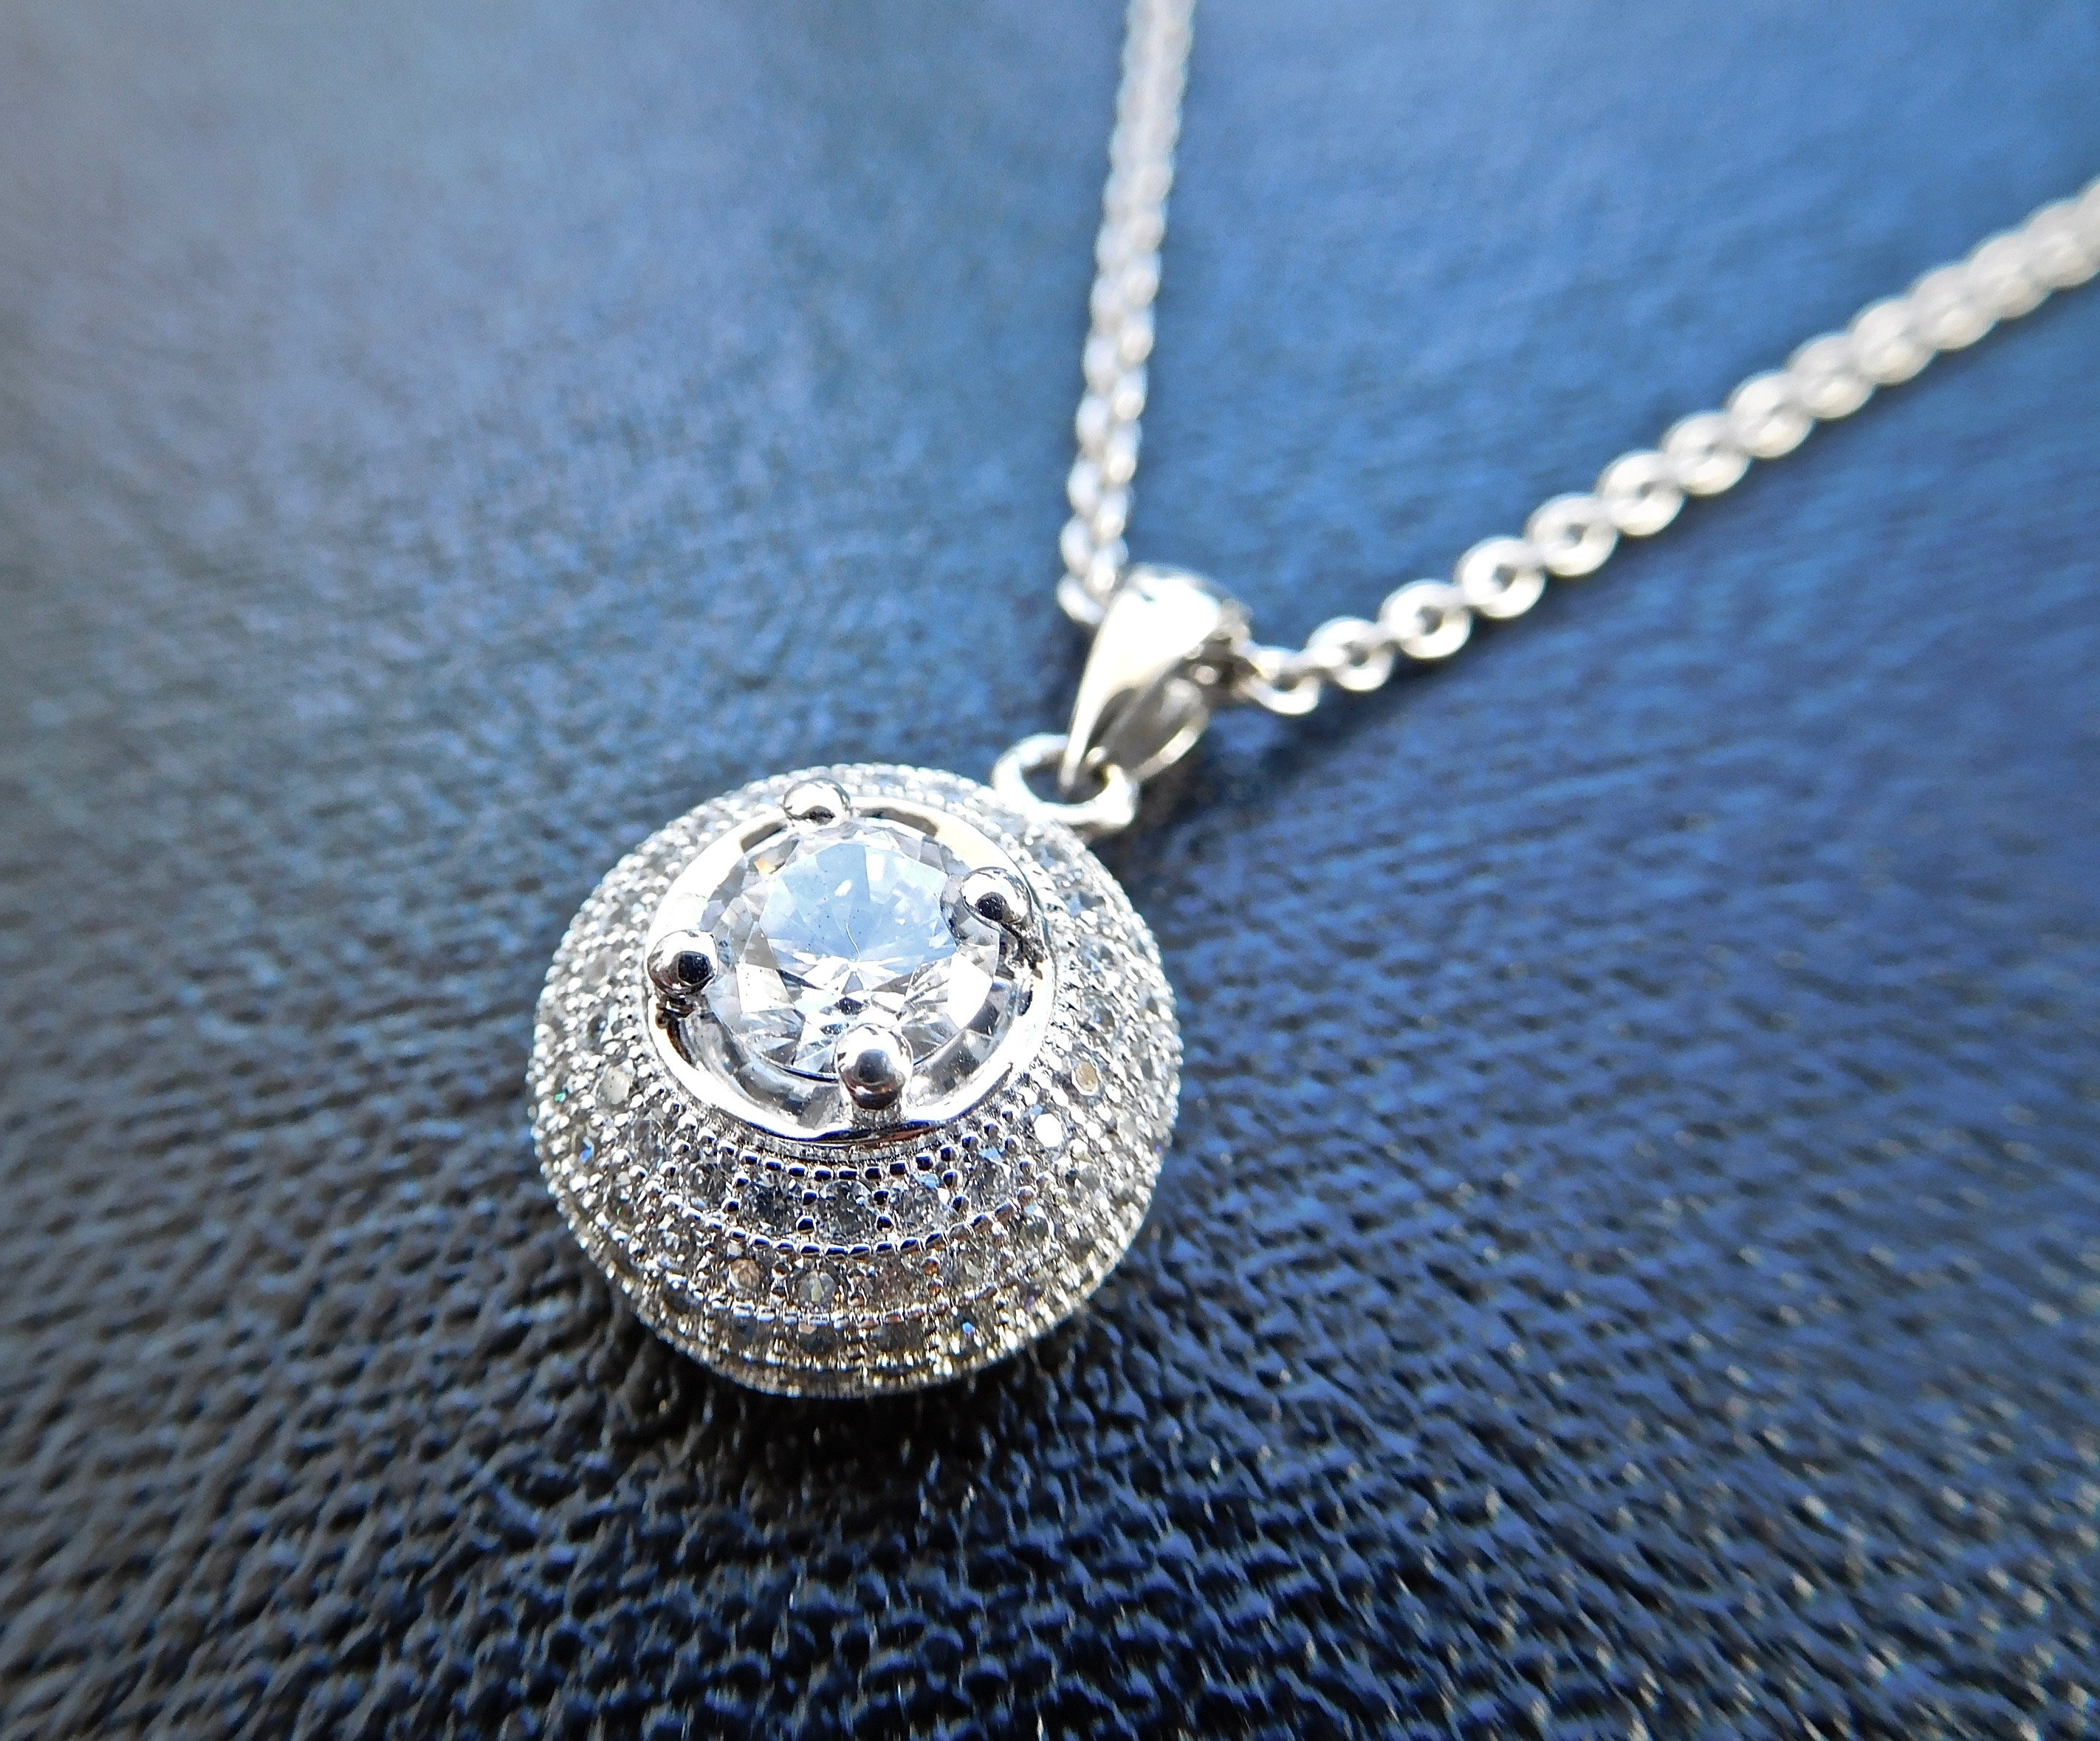 Finest diamond simulants used Sterling silver Vintage inspired silver and diamond necklace